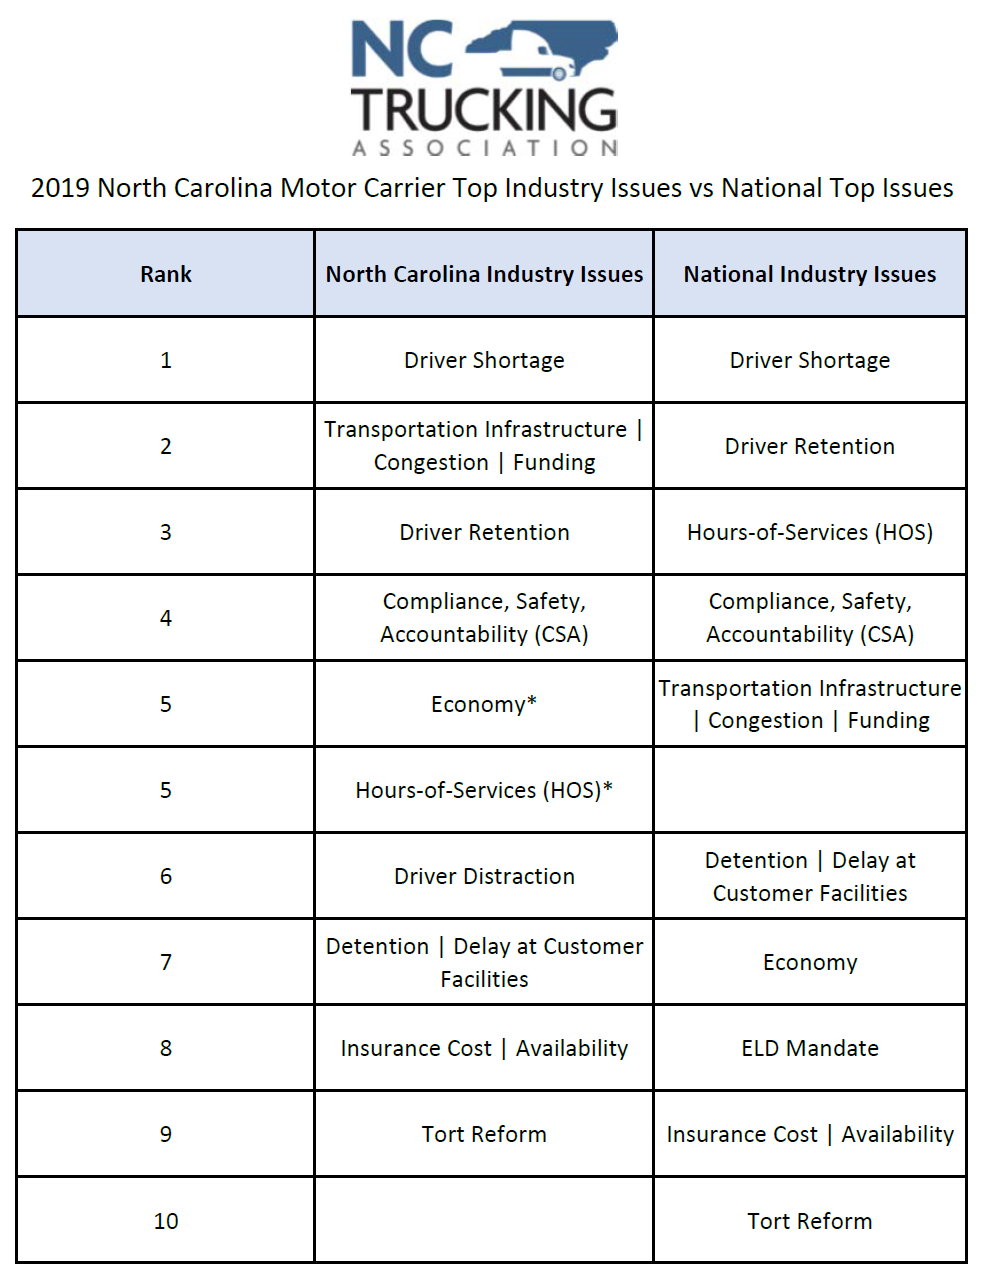 NC vs. National Top Industry Issues